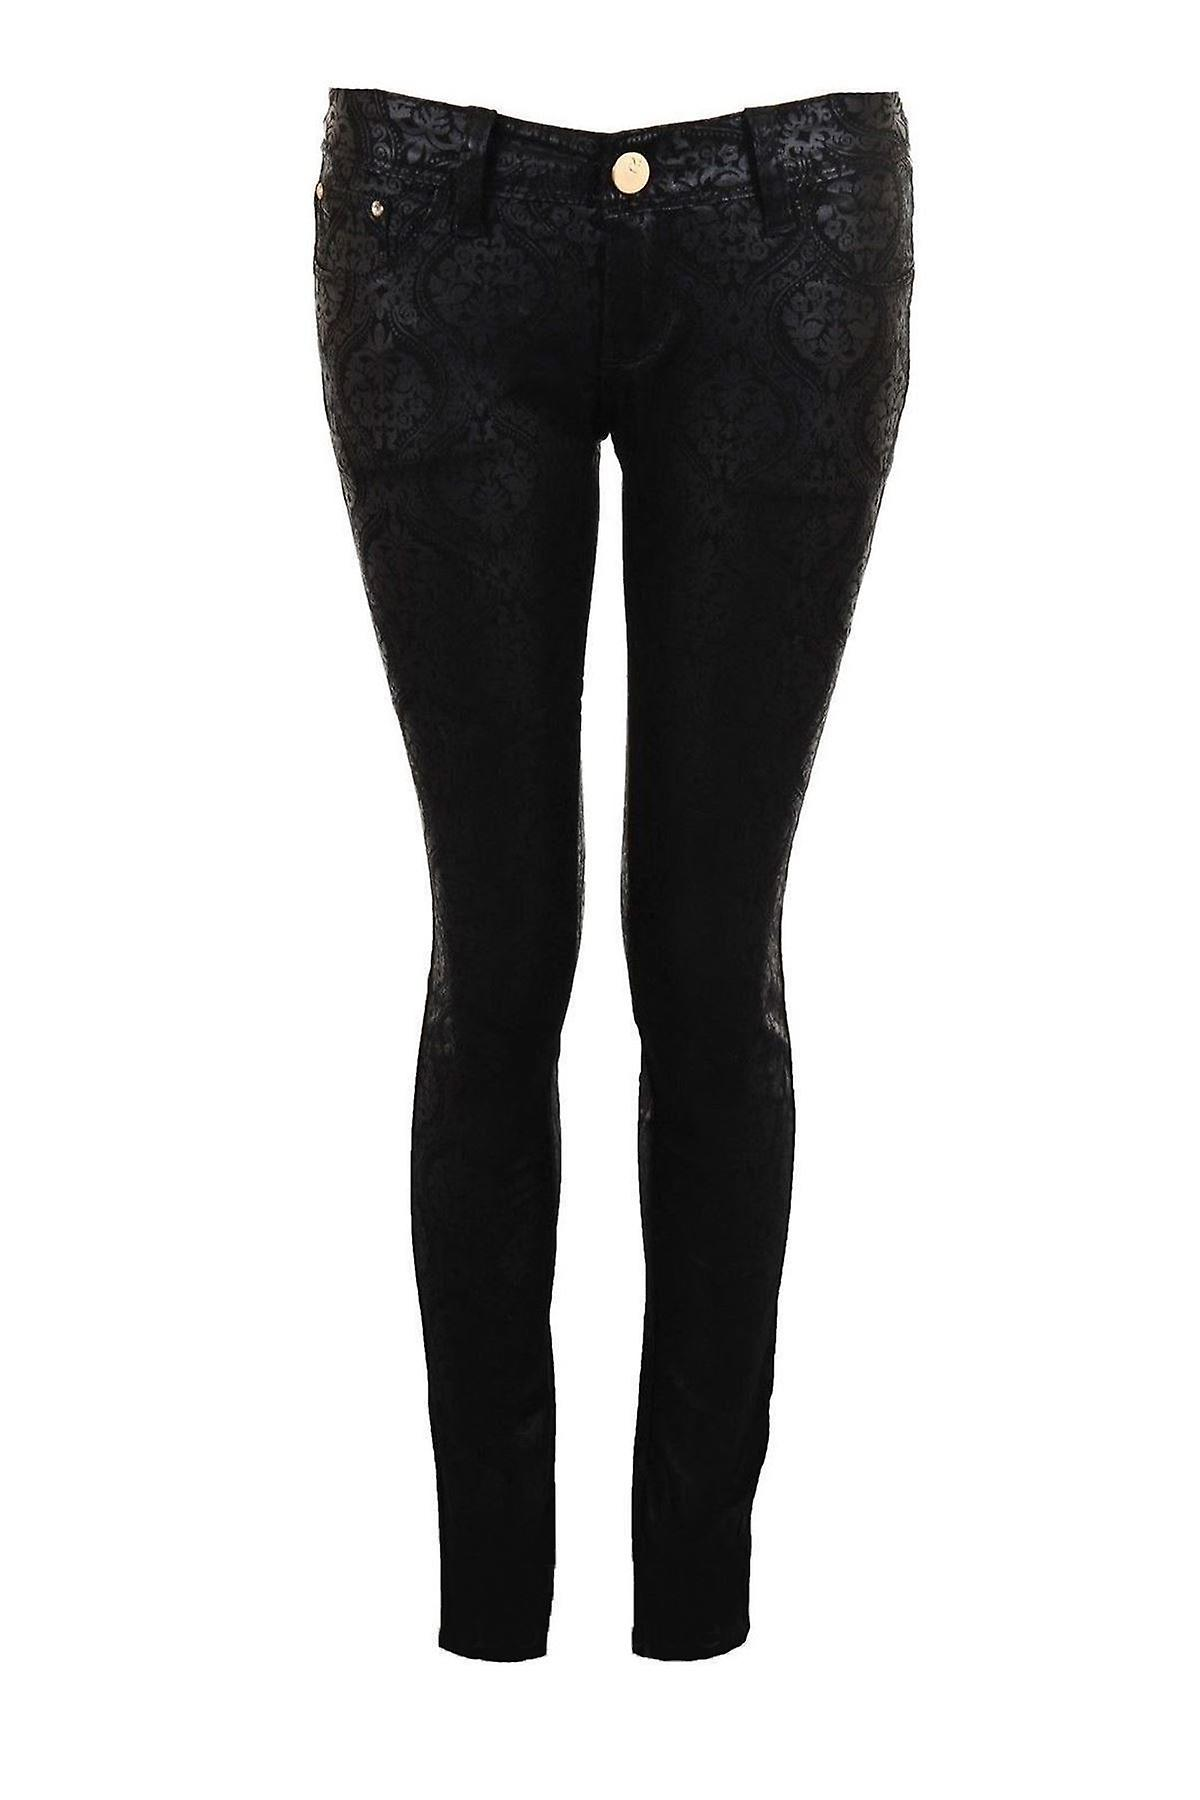 Ladies Self Print Black Diamond Button Skinny Tight Fit Women's Jeggings Jeans